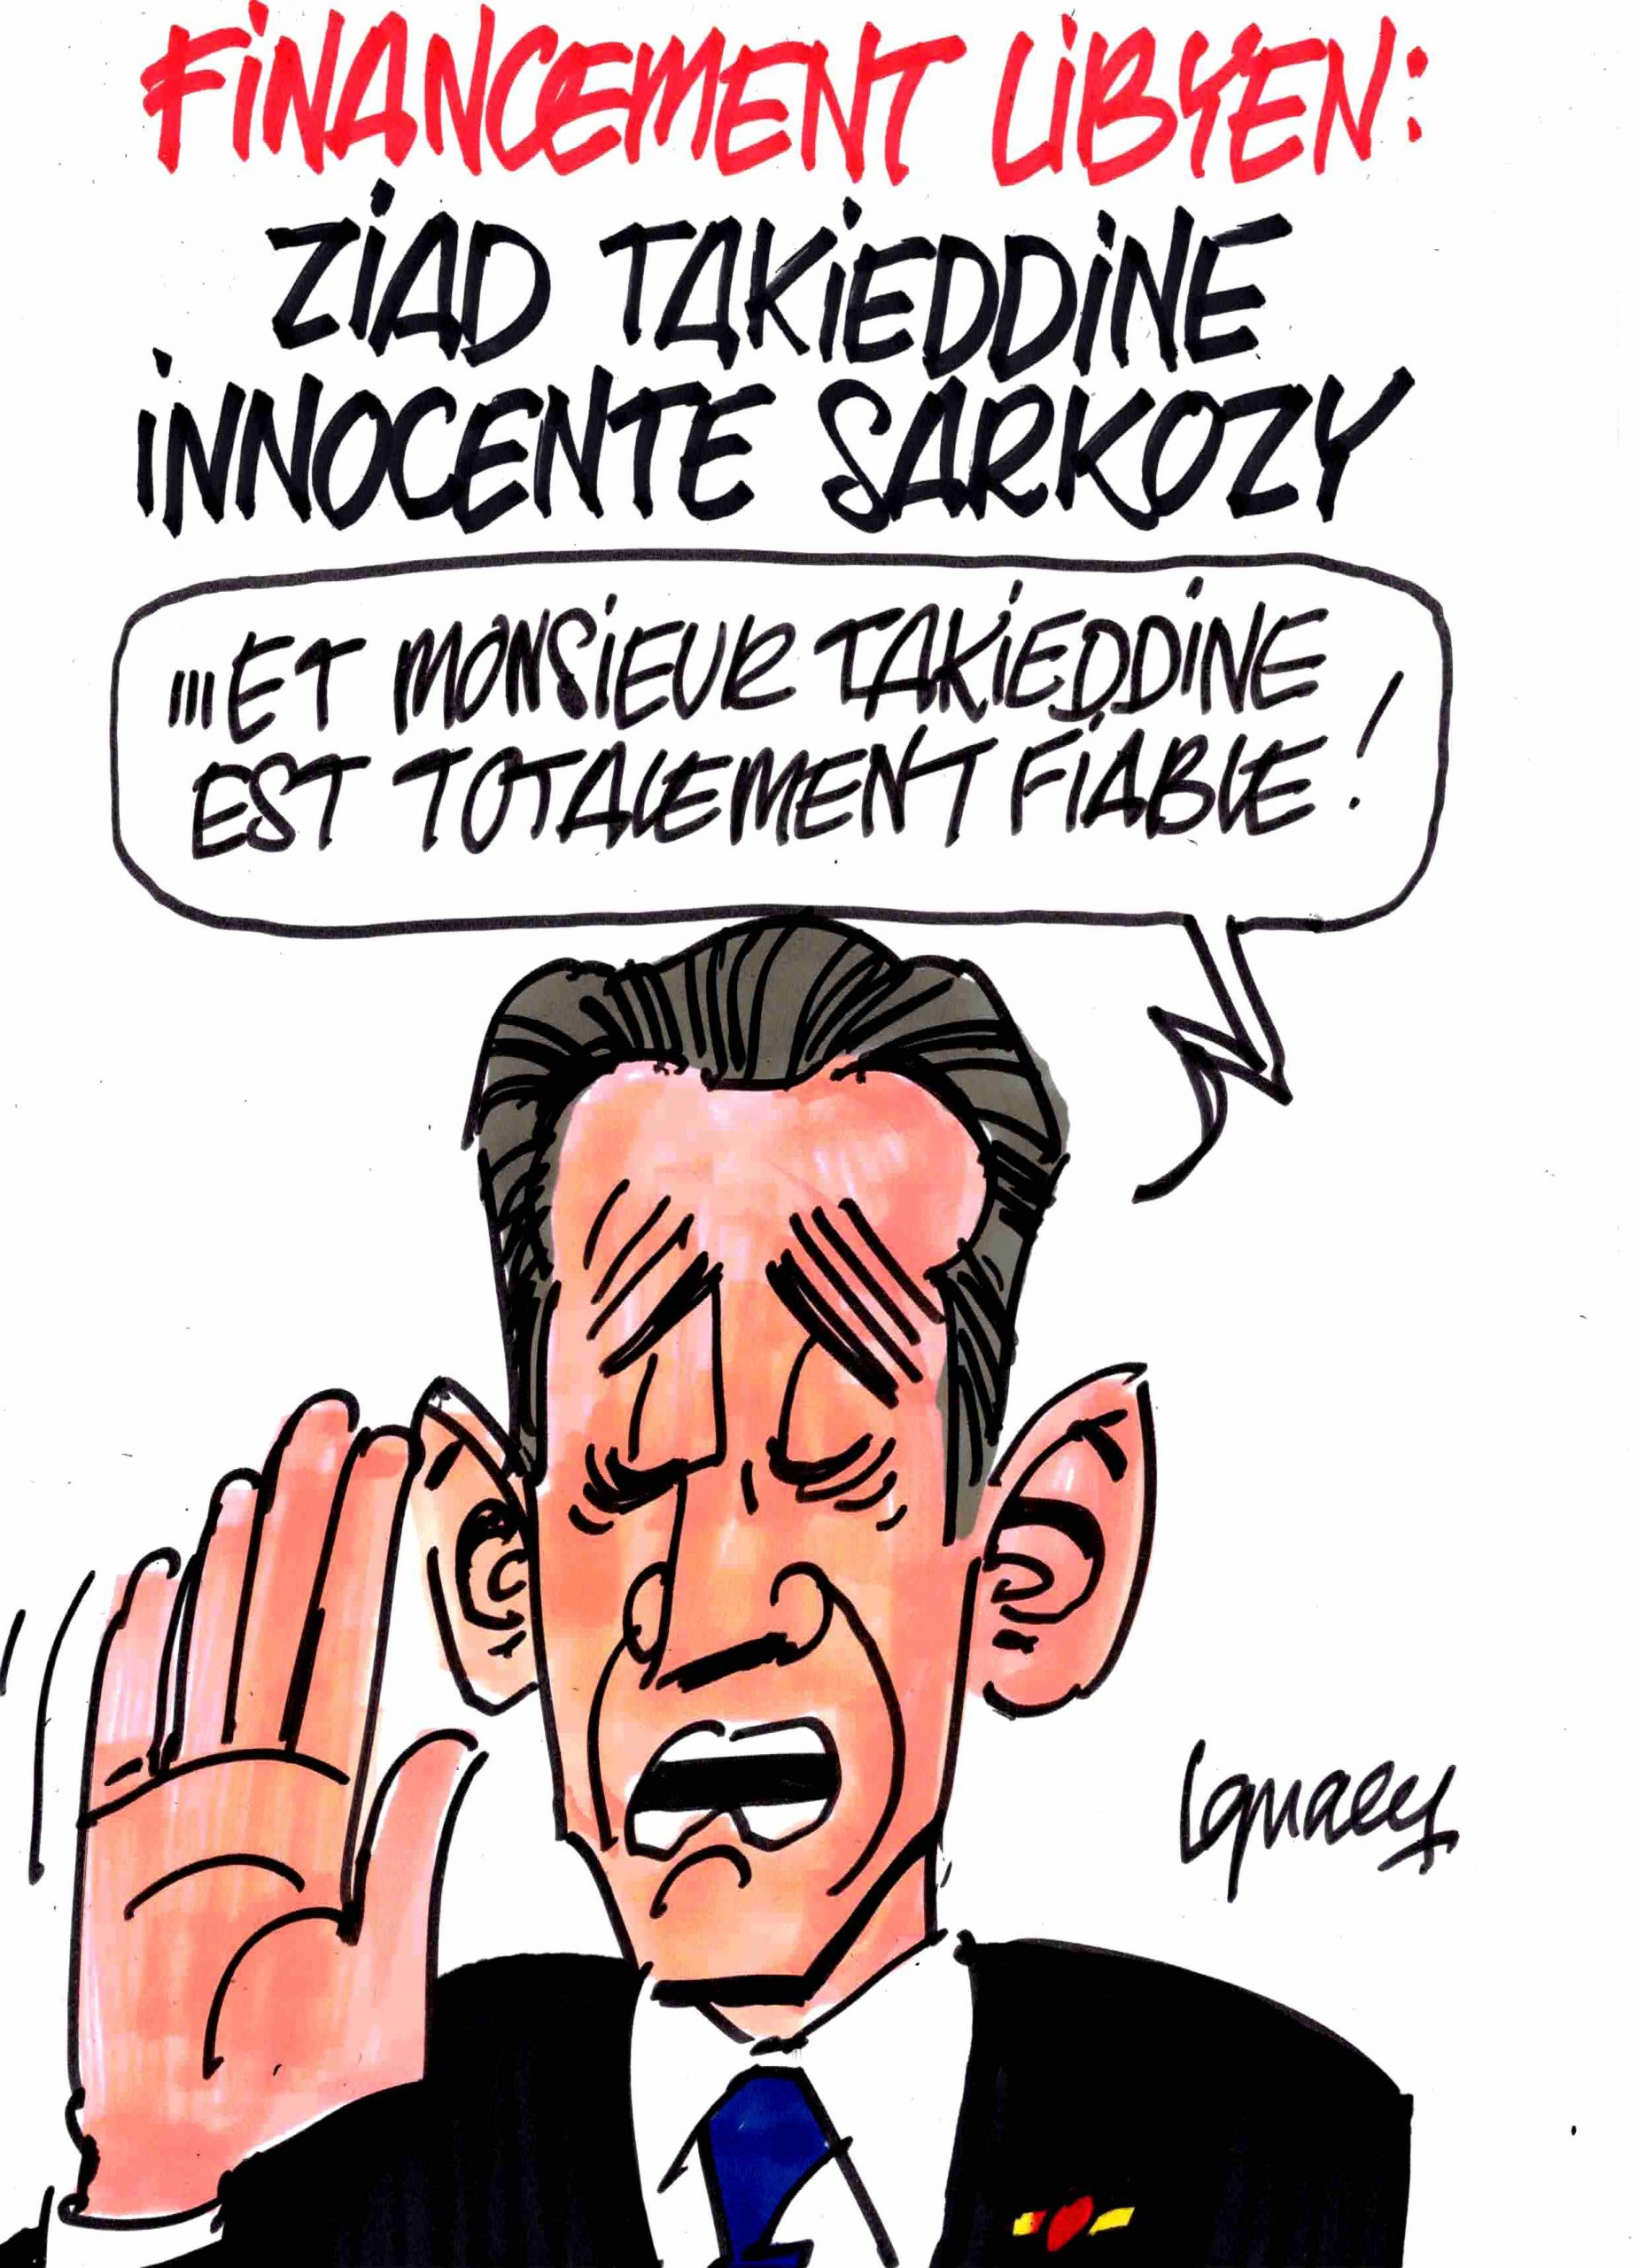 Ignace - Takieddine innocente Sarkozy